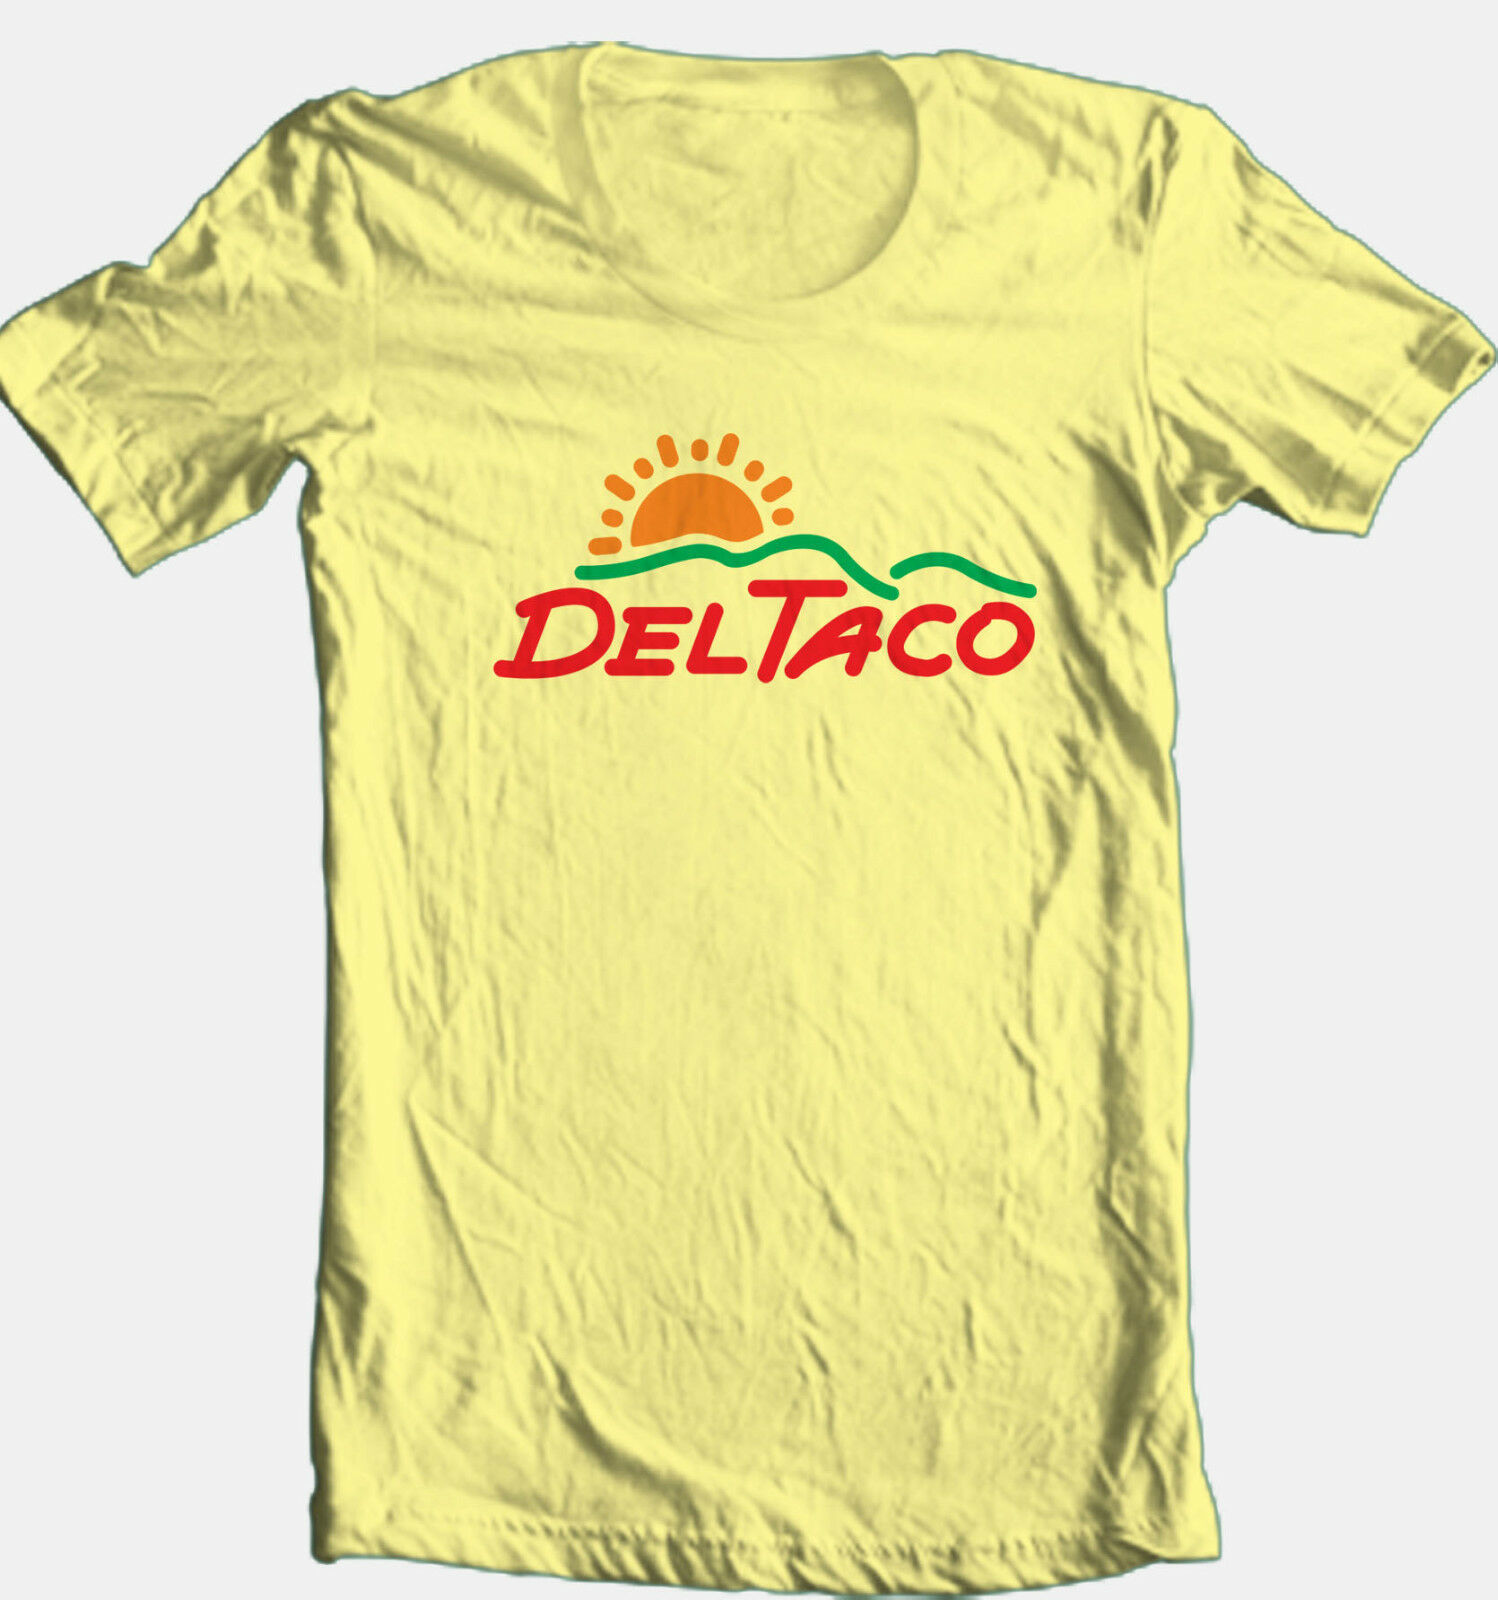 Del Taco T-shirt retro vintage style 70s fast food cotton graphic yellow tee